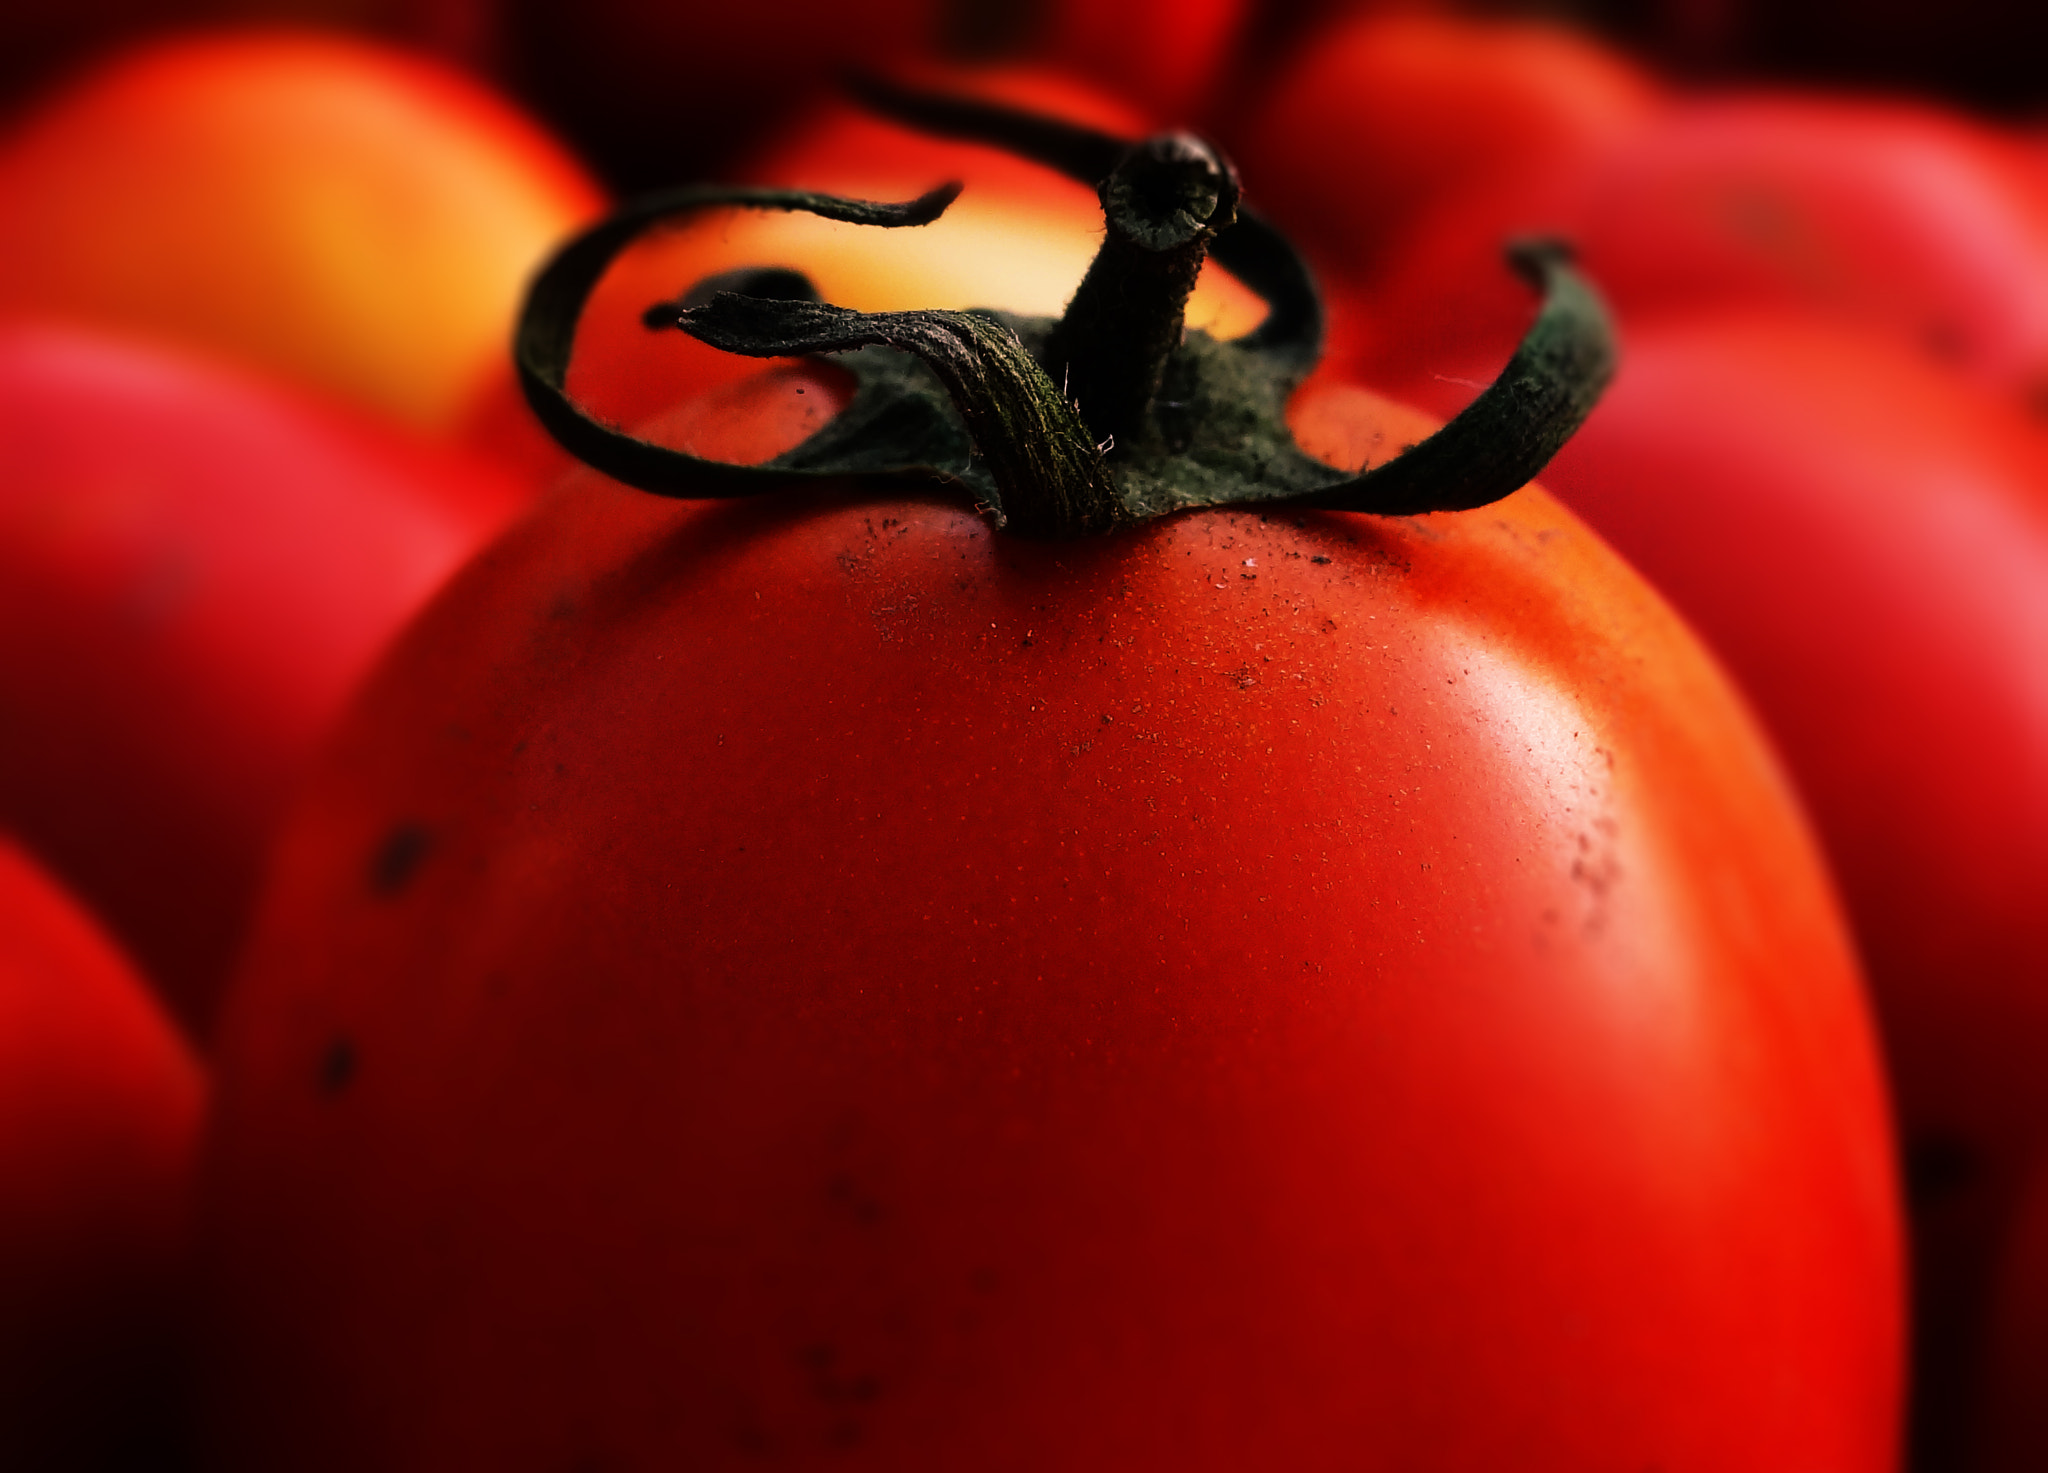 Photograph Tomatoes by Akshun Babbar on 500px